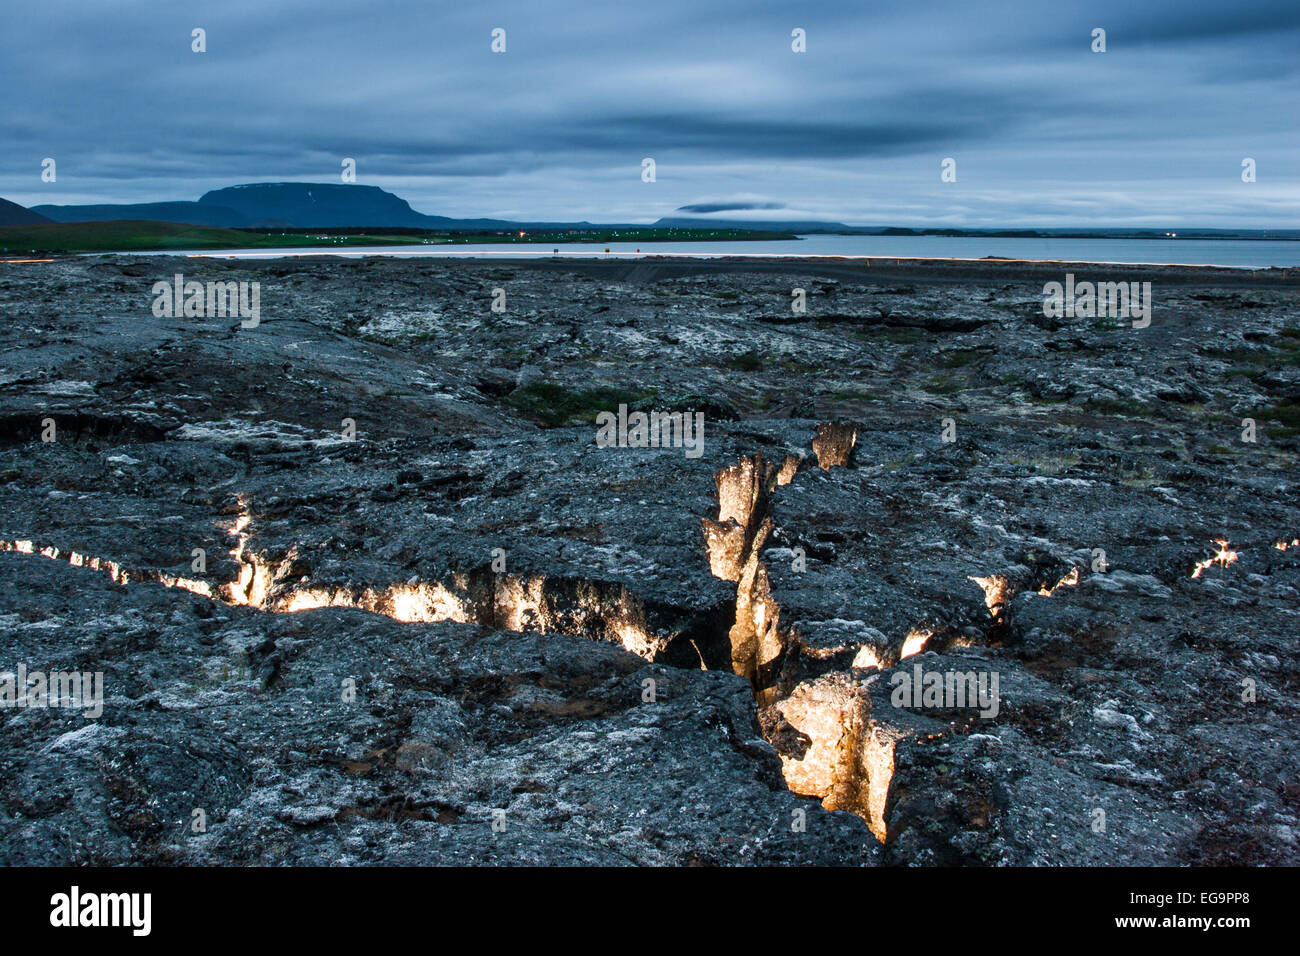 Diverging plates in a volcanic fissure zone, Myvatn, Iceland The fissures were lighted with a strobe light , Myvatn - Stock Image